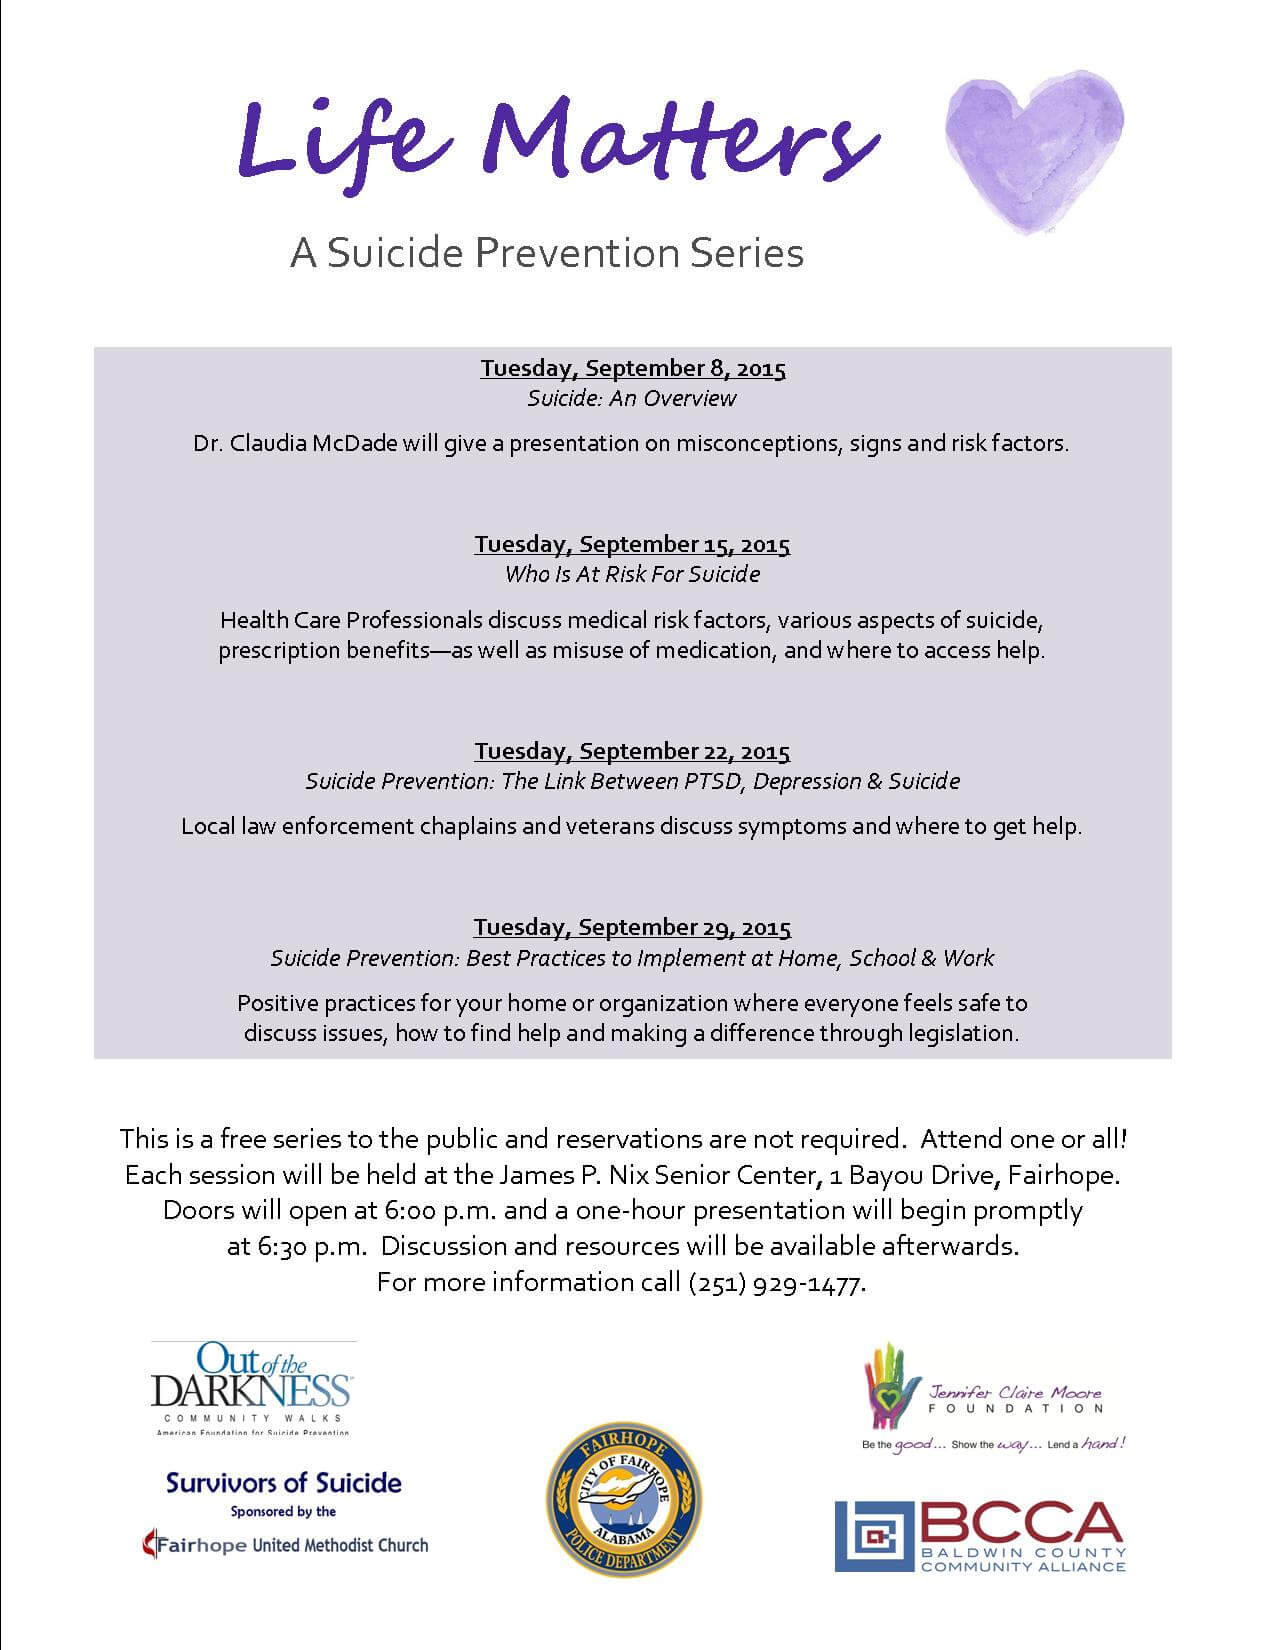 Suicide prevention series begins Sept. 8 in Fairhope